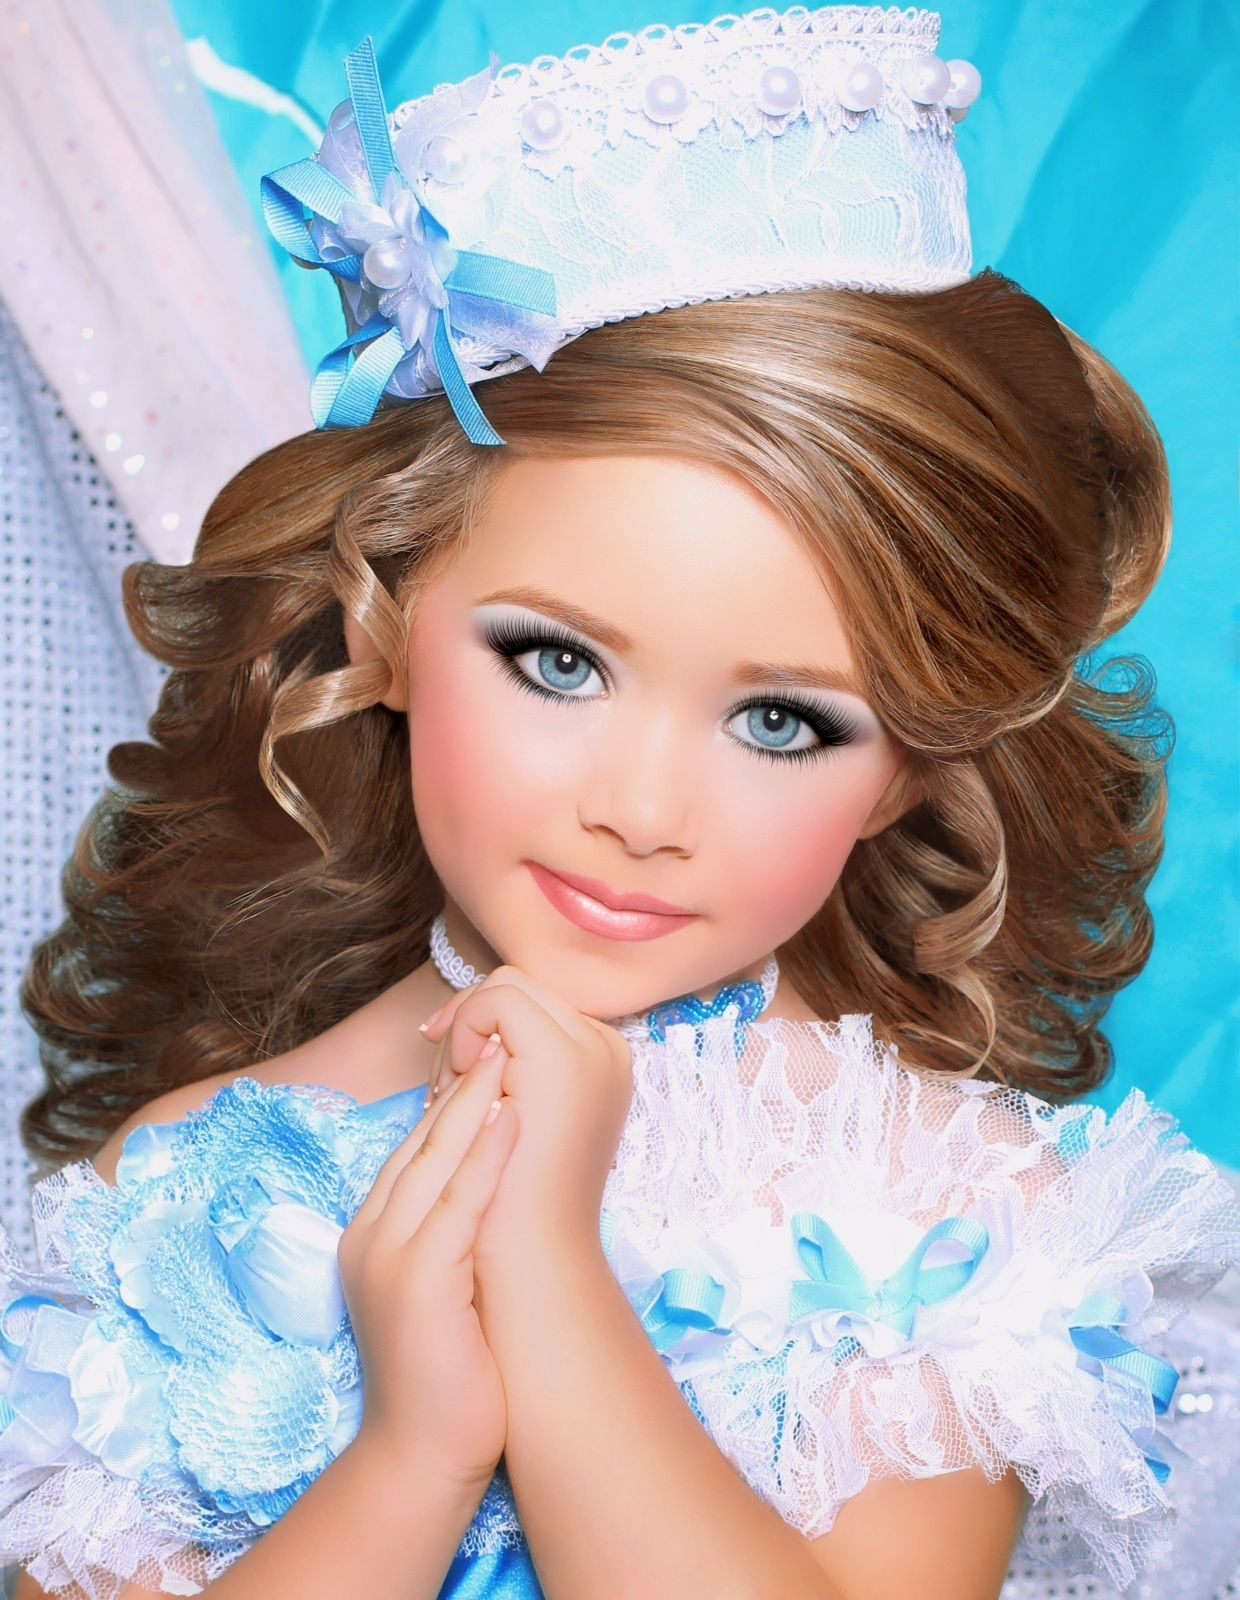 Pageant Photo Toppers, Glitz Photo Shoot Sets